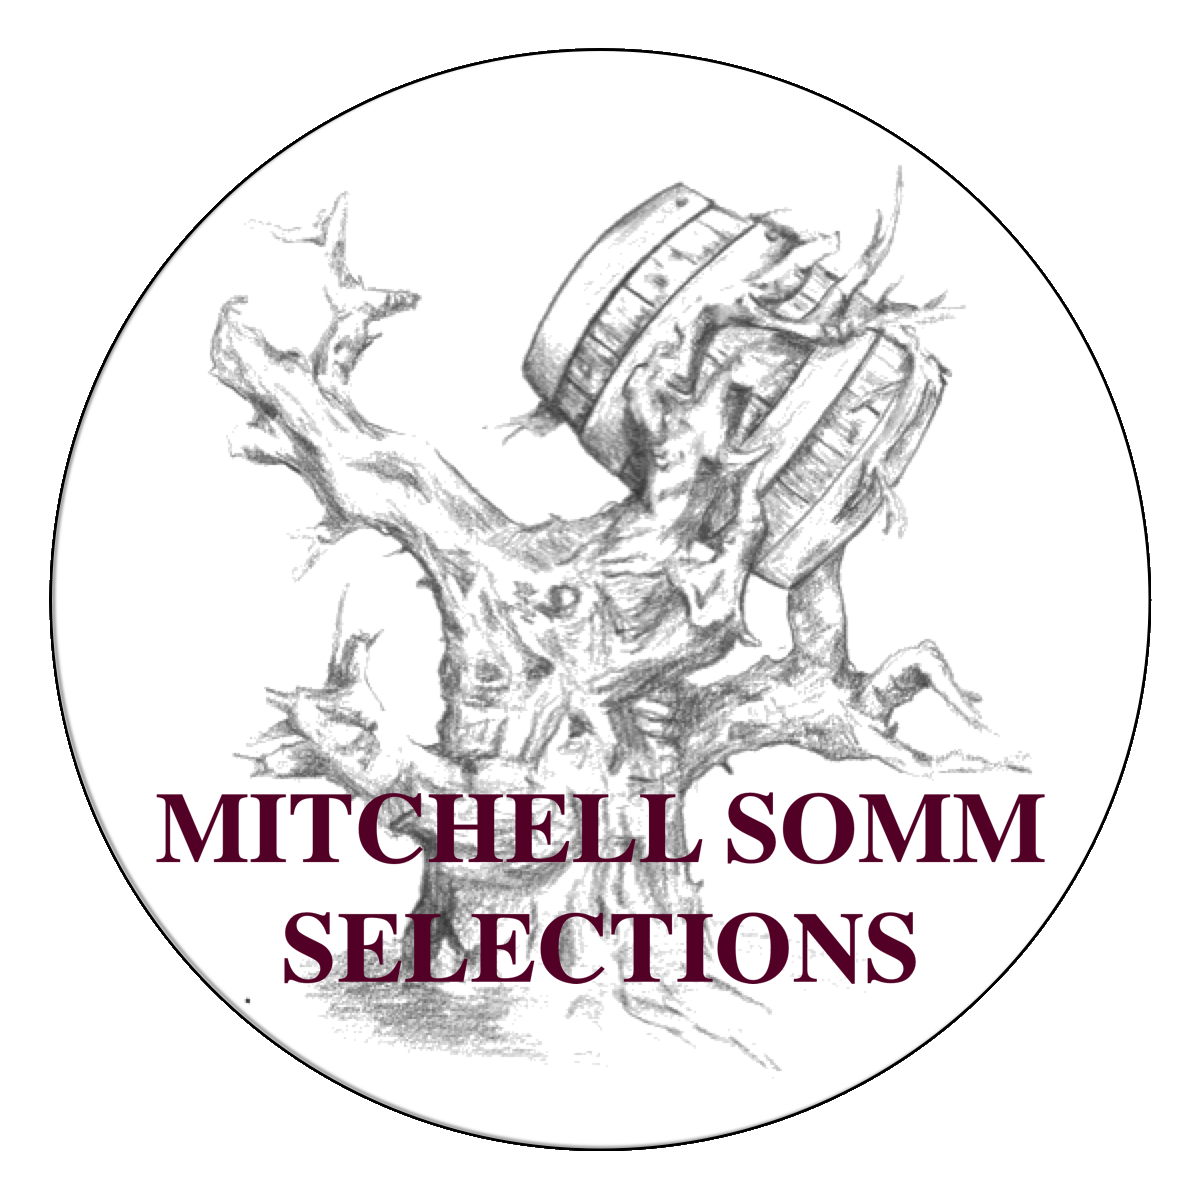 Mitchell Somm Selections